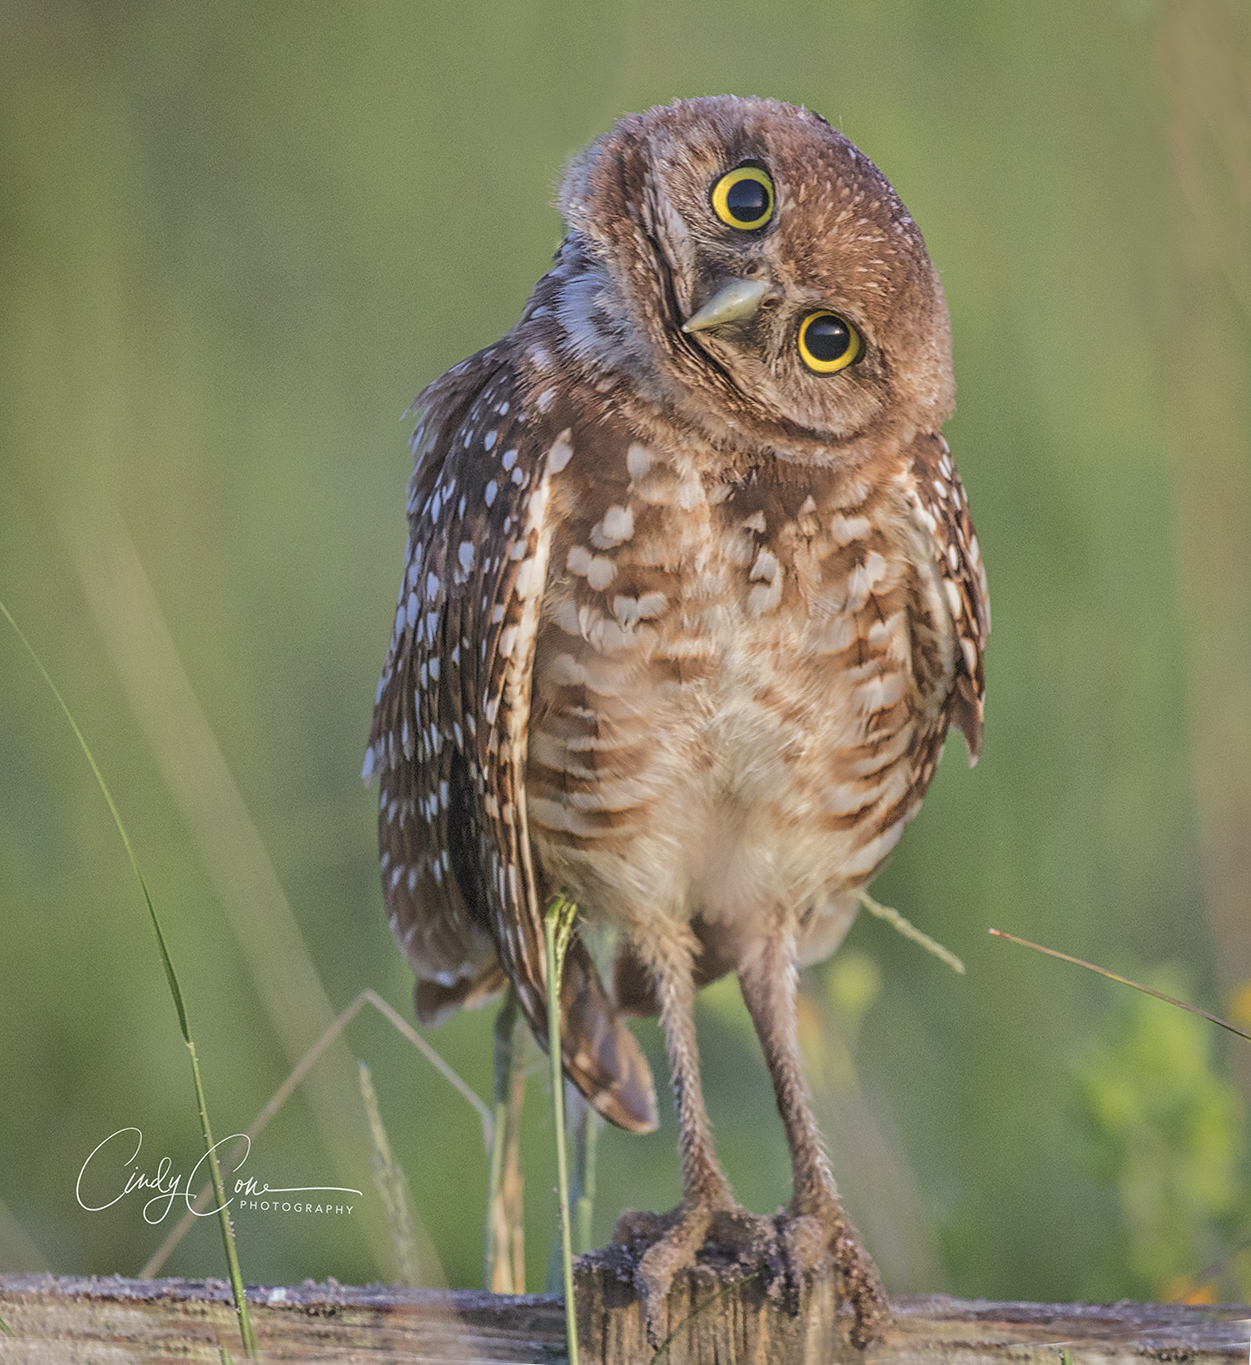 Quizzical look by burrowing owl, Cape Coral, Florida